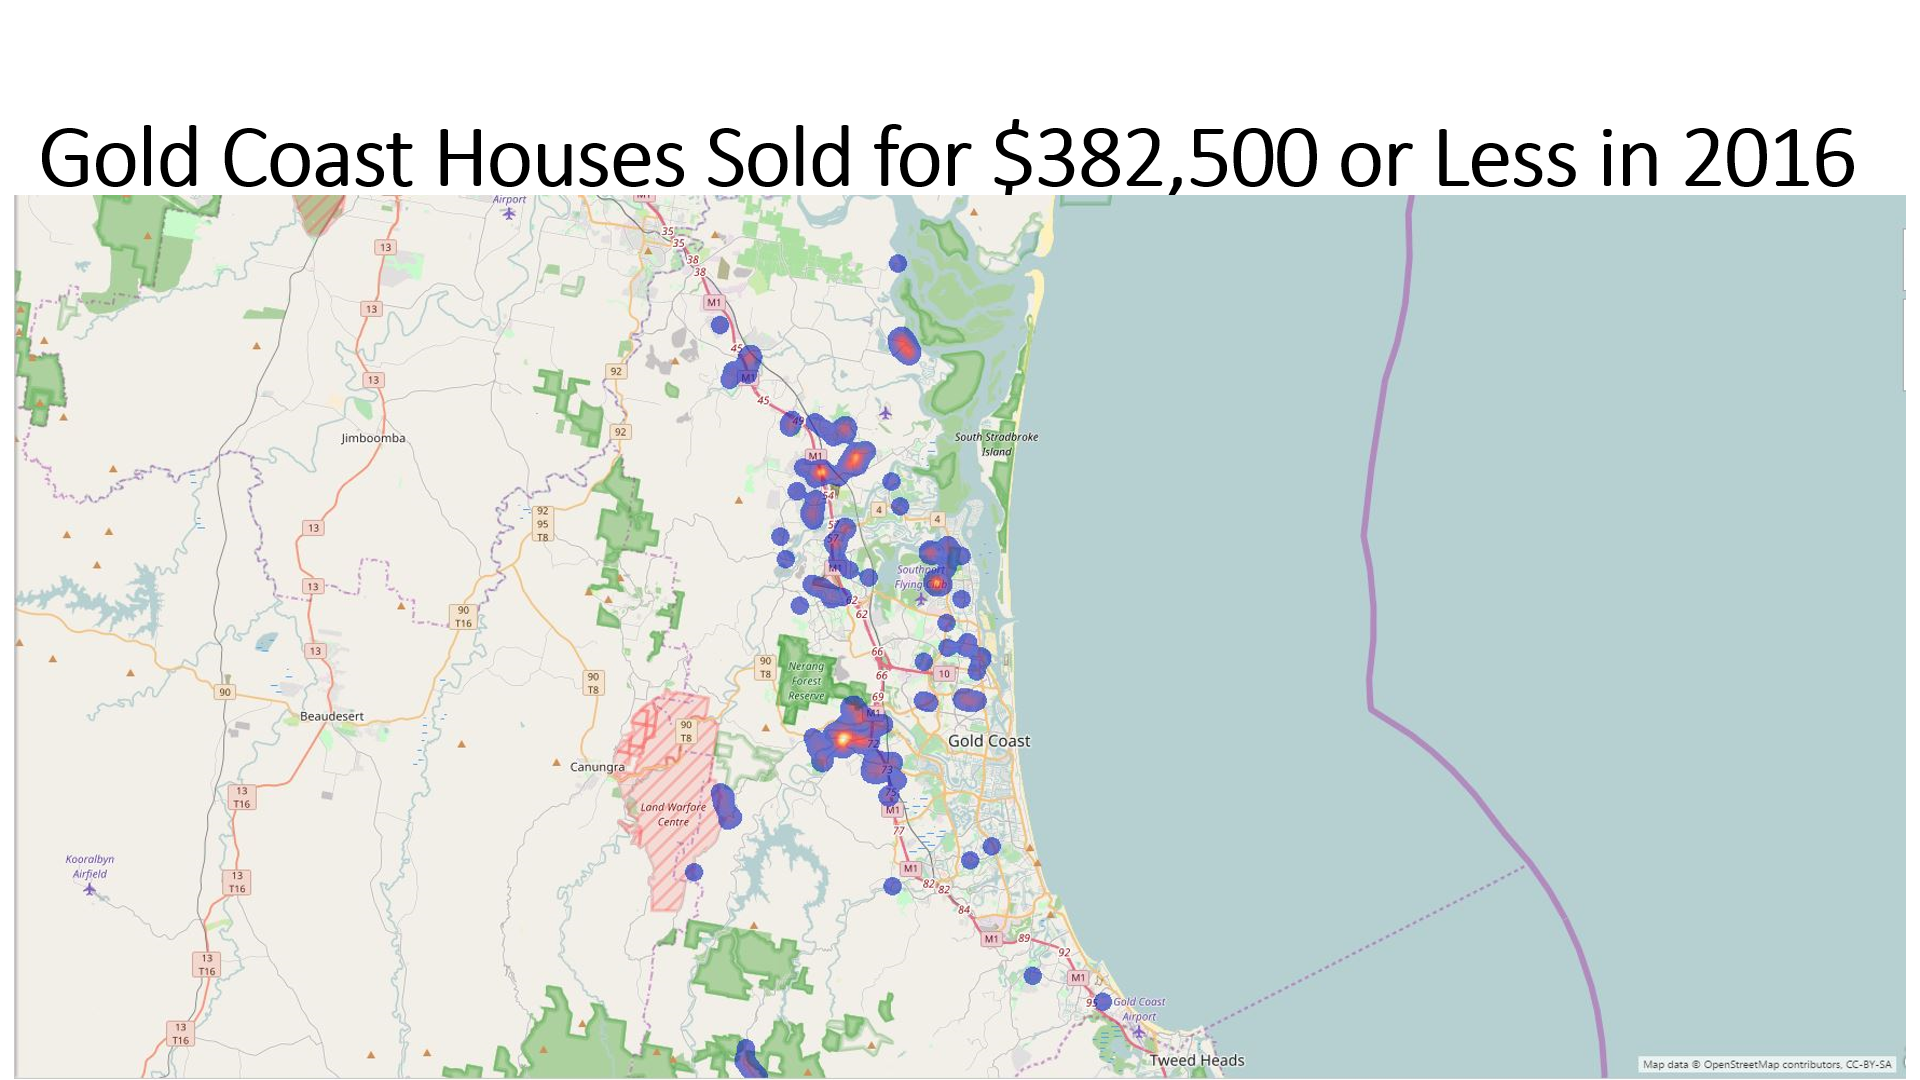 Source: PriceFinder, Power BI Maps, The NPR Co.